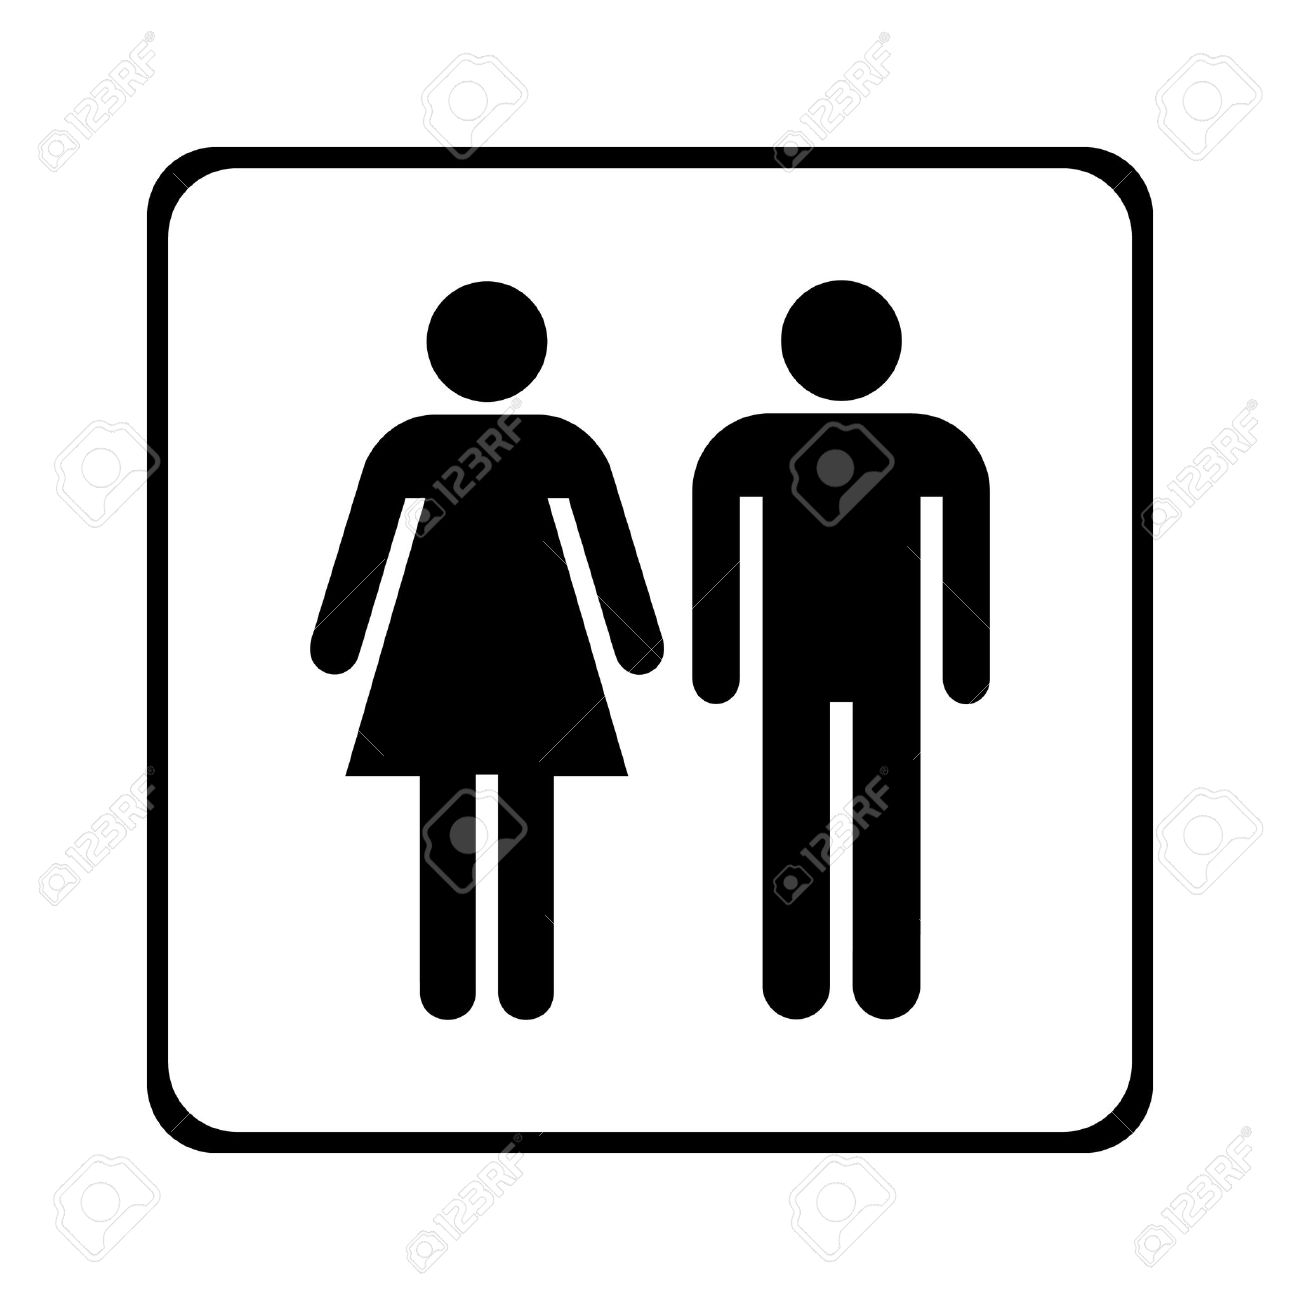 Male And Female Sign Vector Royalty Free Cliparts Vectors Rh 123rf Com Restroom File Symbol